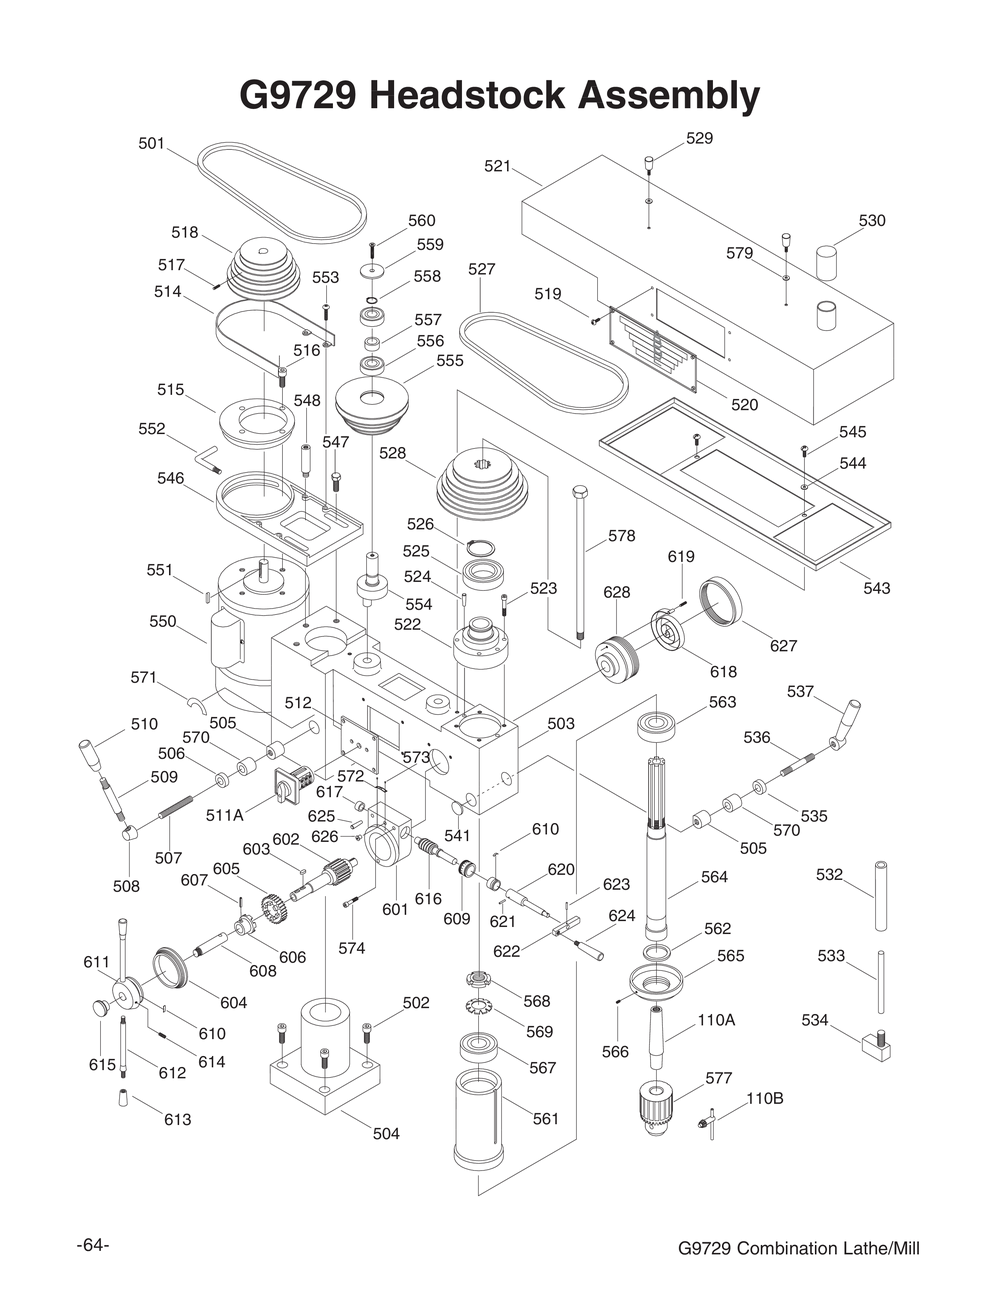 Audi Transmission Diagrams on studebaker transmission diagrams, toyota transmission diagrams, audi a4 fuse diagram, plymouth transmission diagrams, ford transmission diagrams, audi awd diagram, aprilia transmission diagrams, audi a4 relay diagram, ktm transmission diagrams, hyundai transmission diagrams, dodge transmission diagrams, audi a4 with r8 rims,